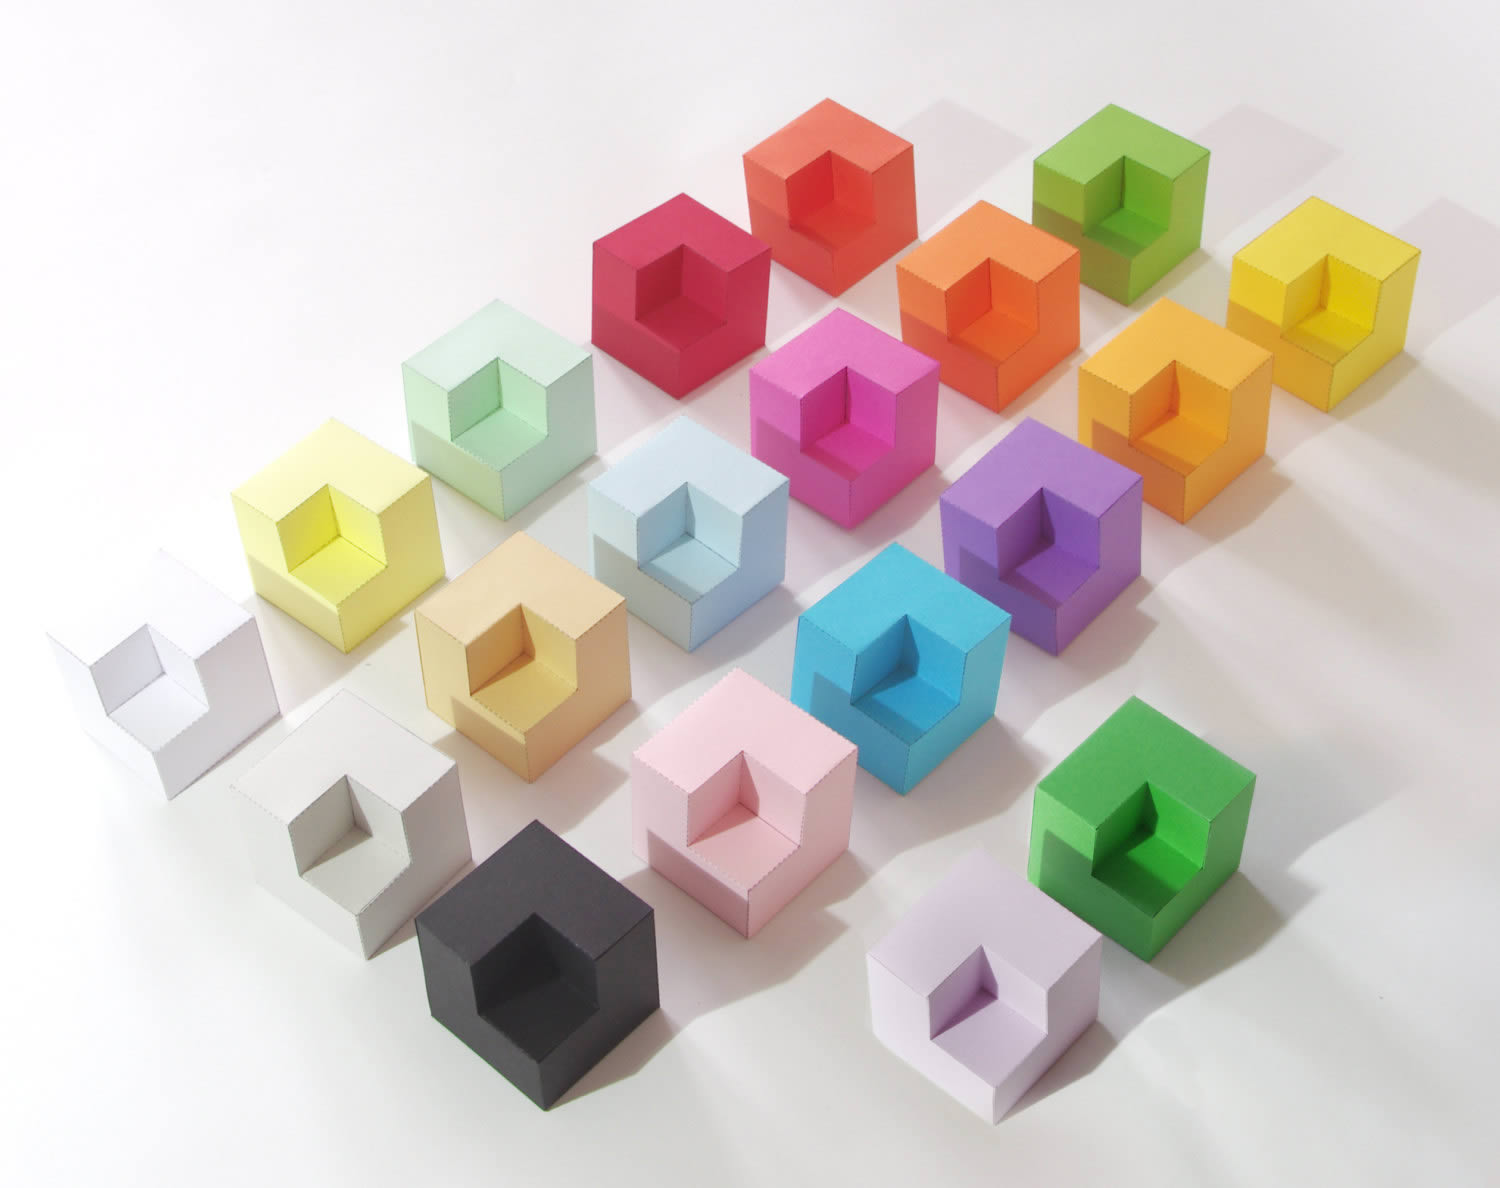 colored cubes made from paper